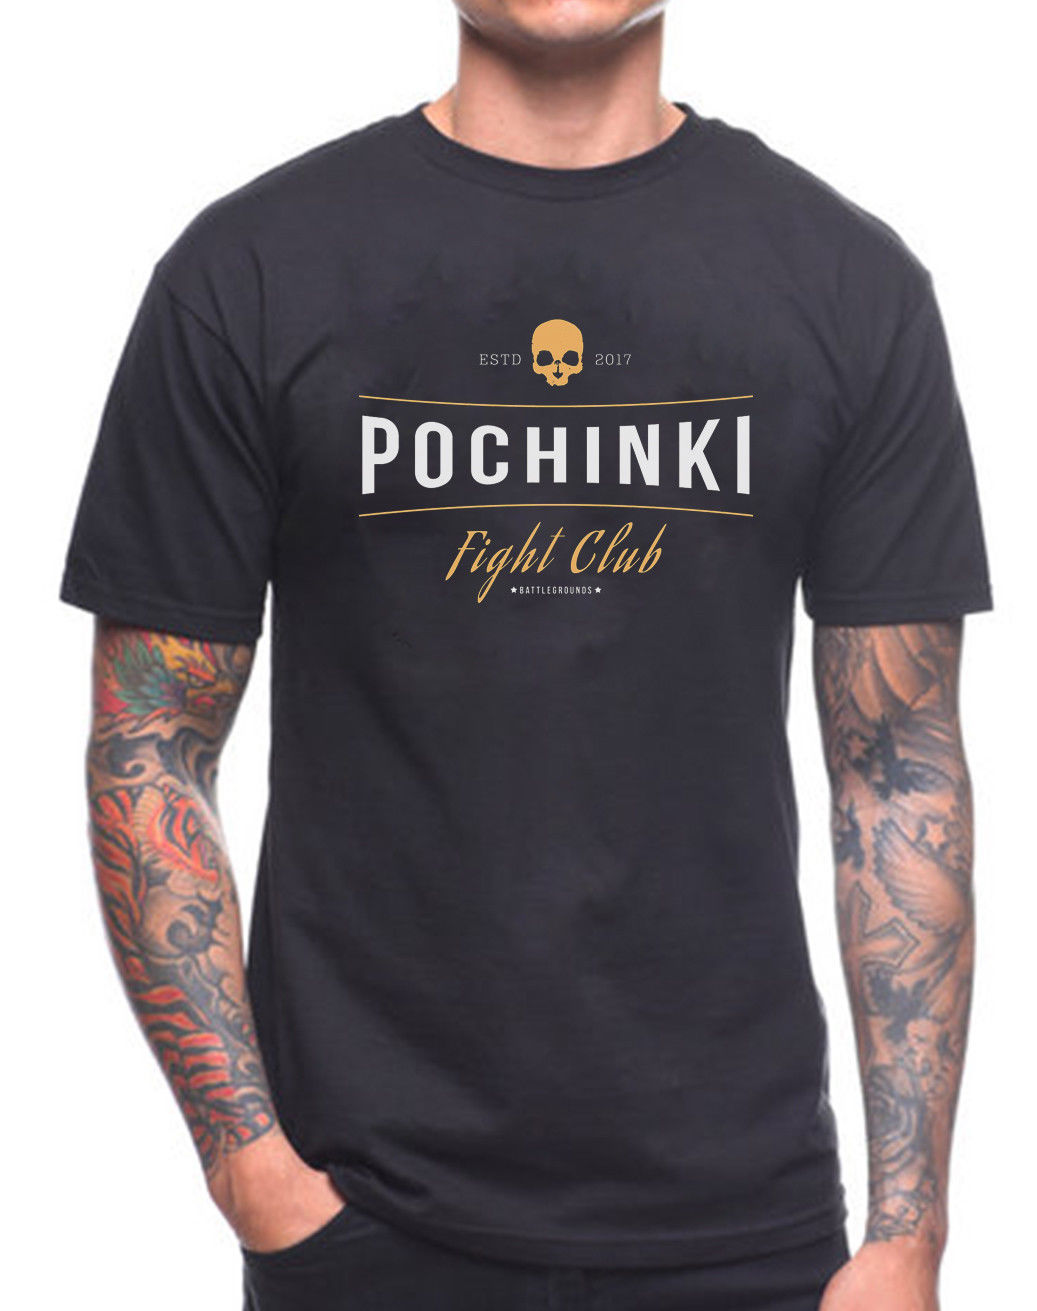 POCHINKI FIGHT CLUB T SHIRT PUBG WINNER WINNER CHICKEN DINNER GAMER GAME XBOX Cool Casual pride t shirt men Unisex New Fashion image